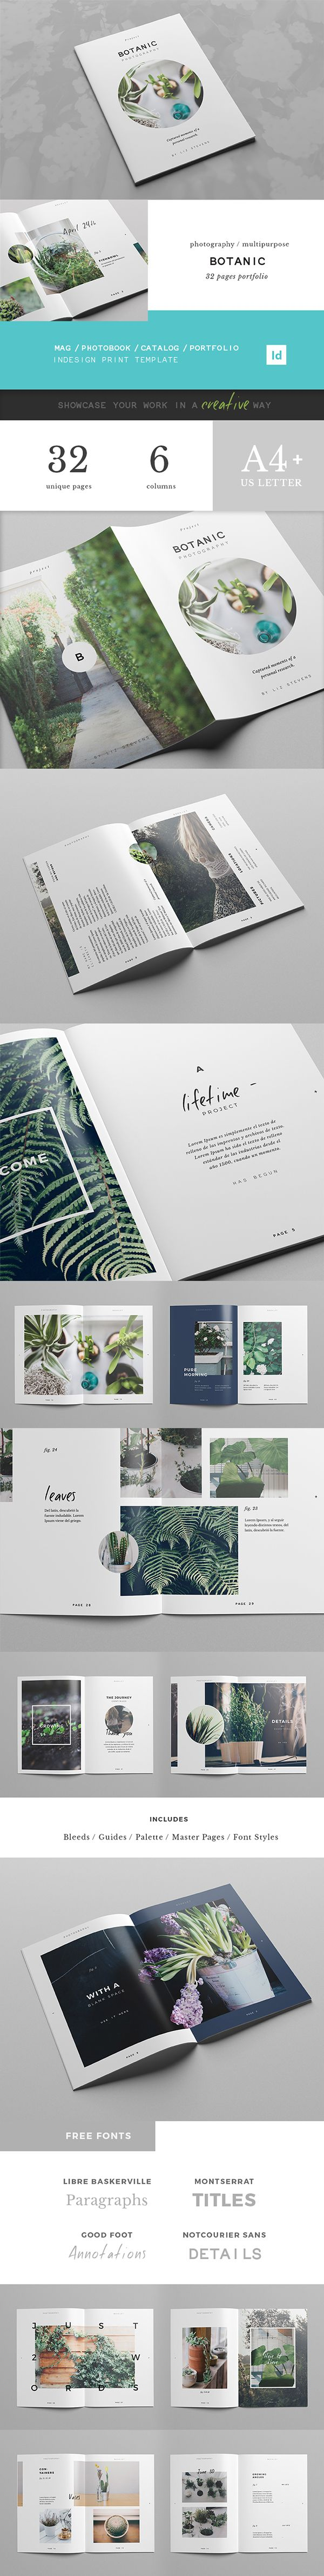 Botanic Portfolio Template on Editorial Design Served